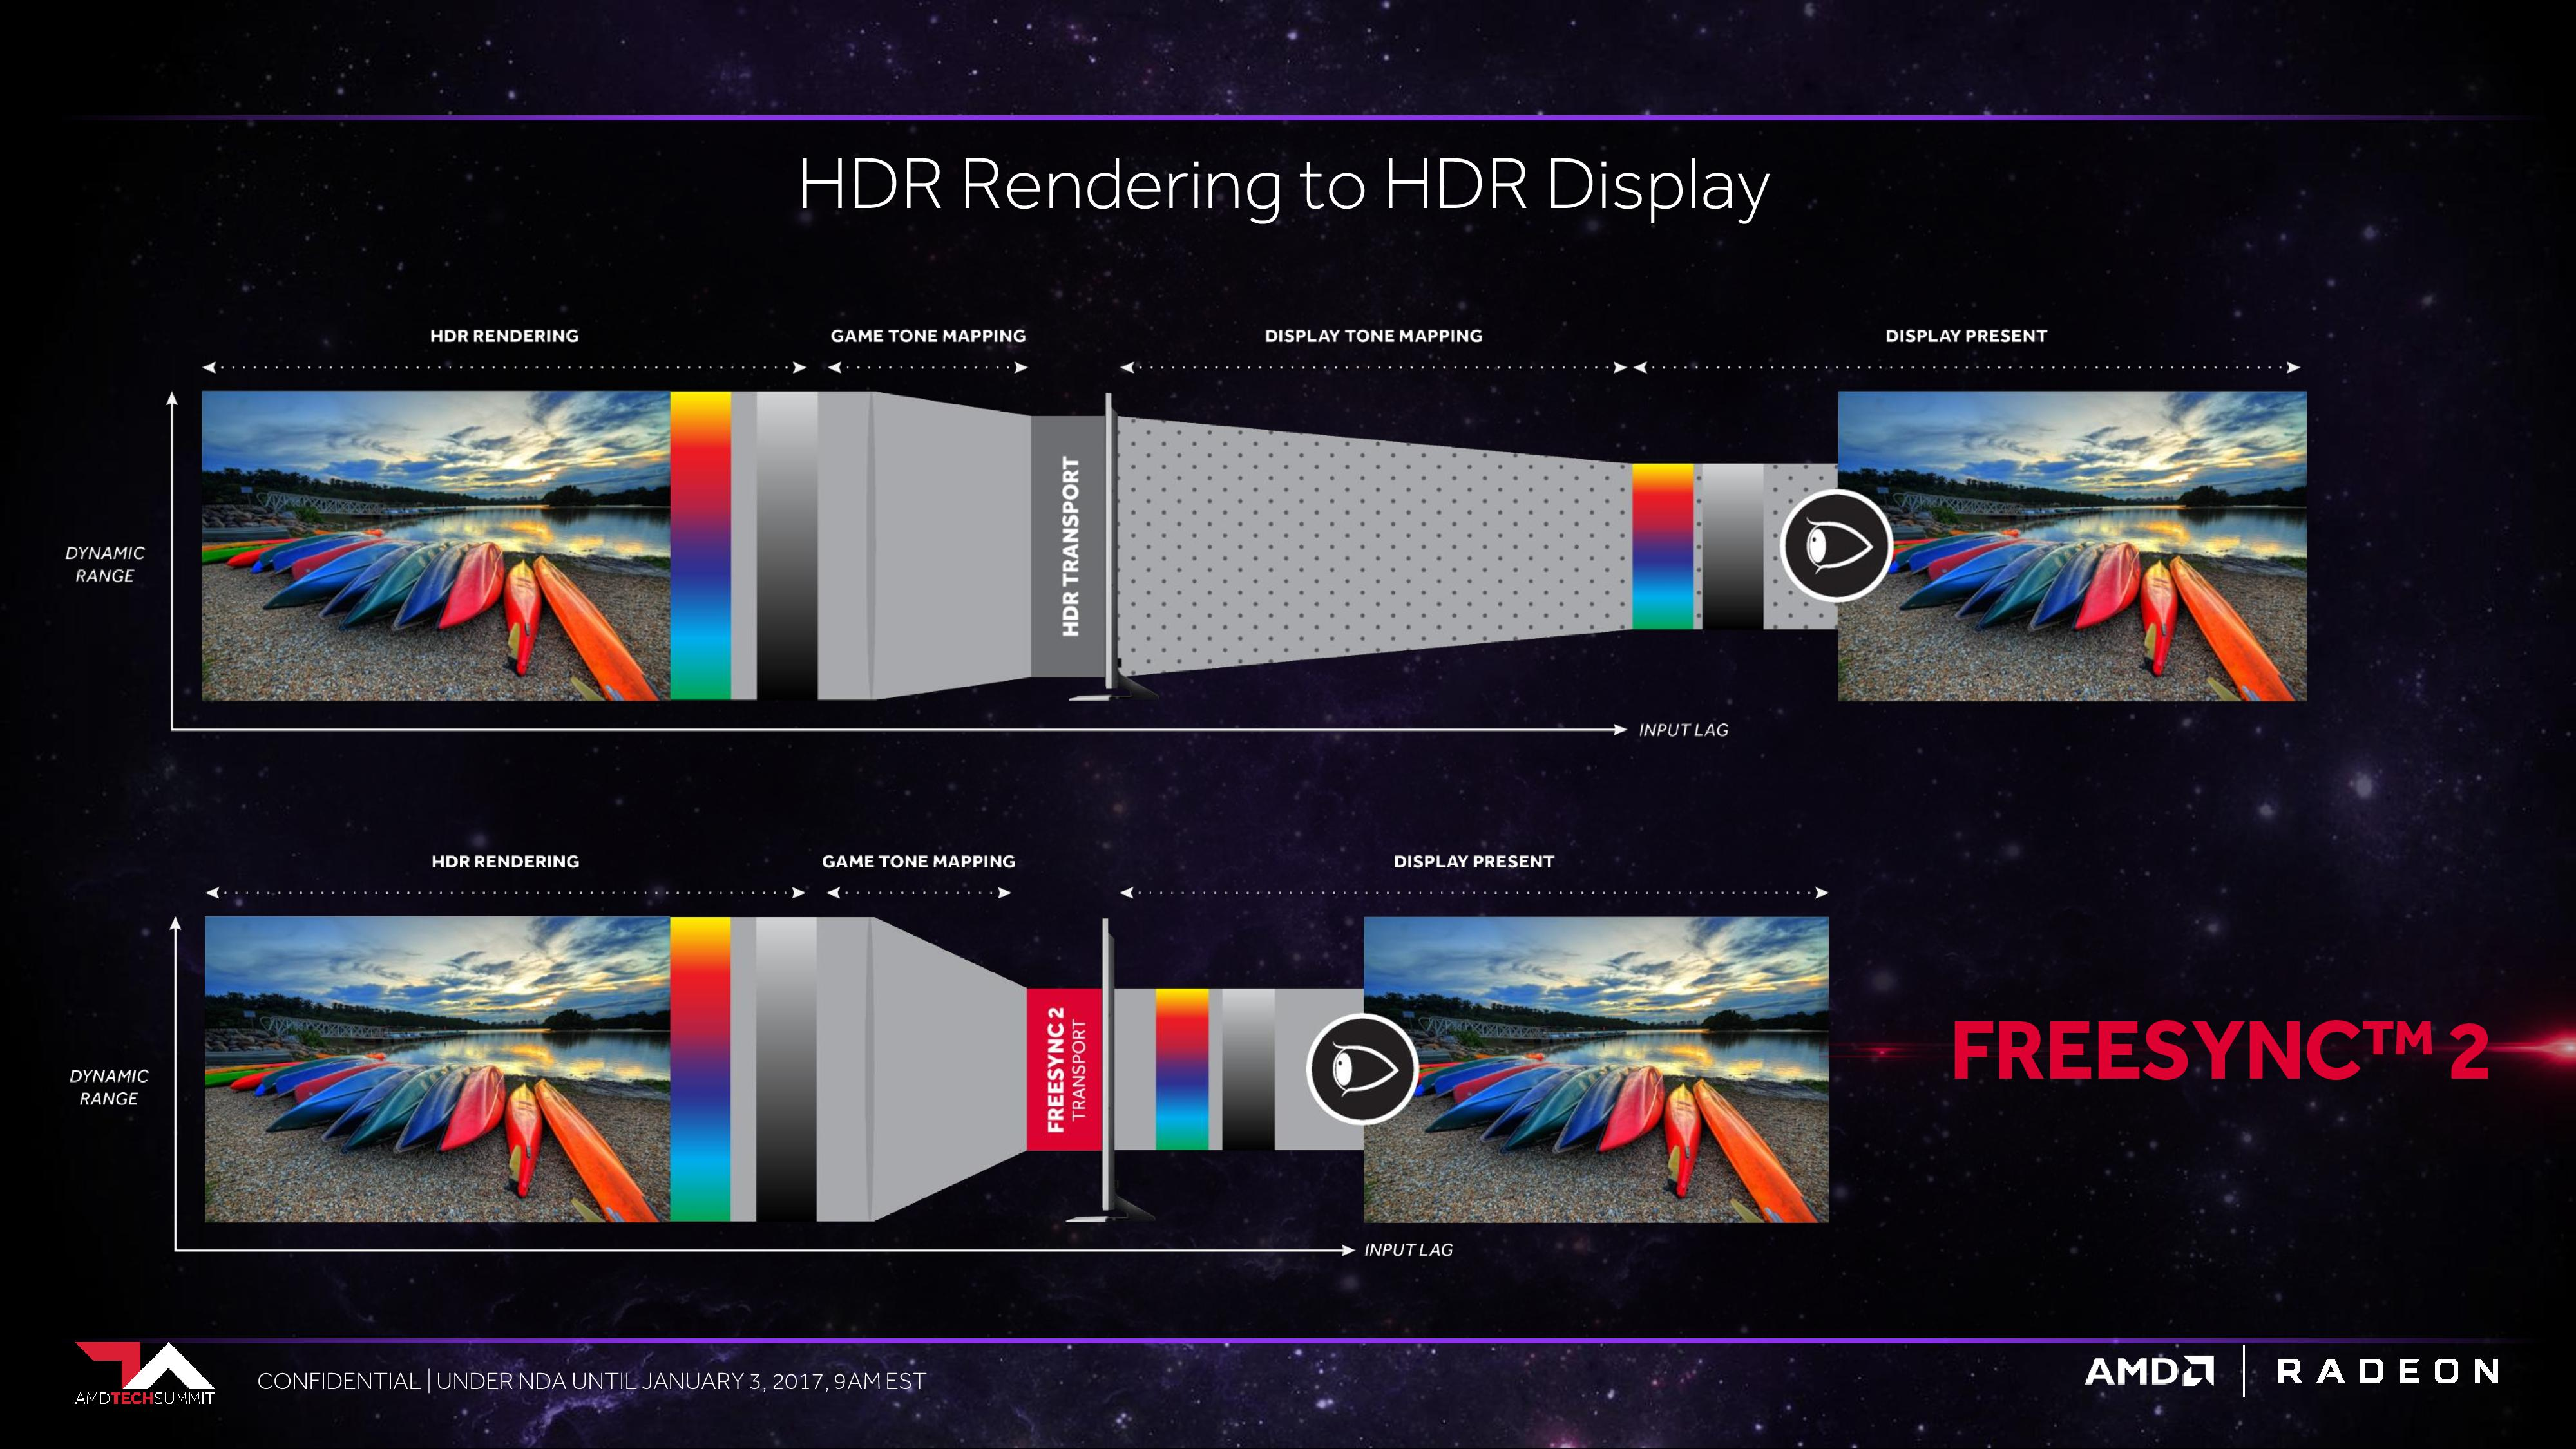 FreeSync 2 eliminates the second colour mapping step typically required with HDR, thus reducing input lag.